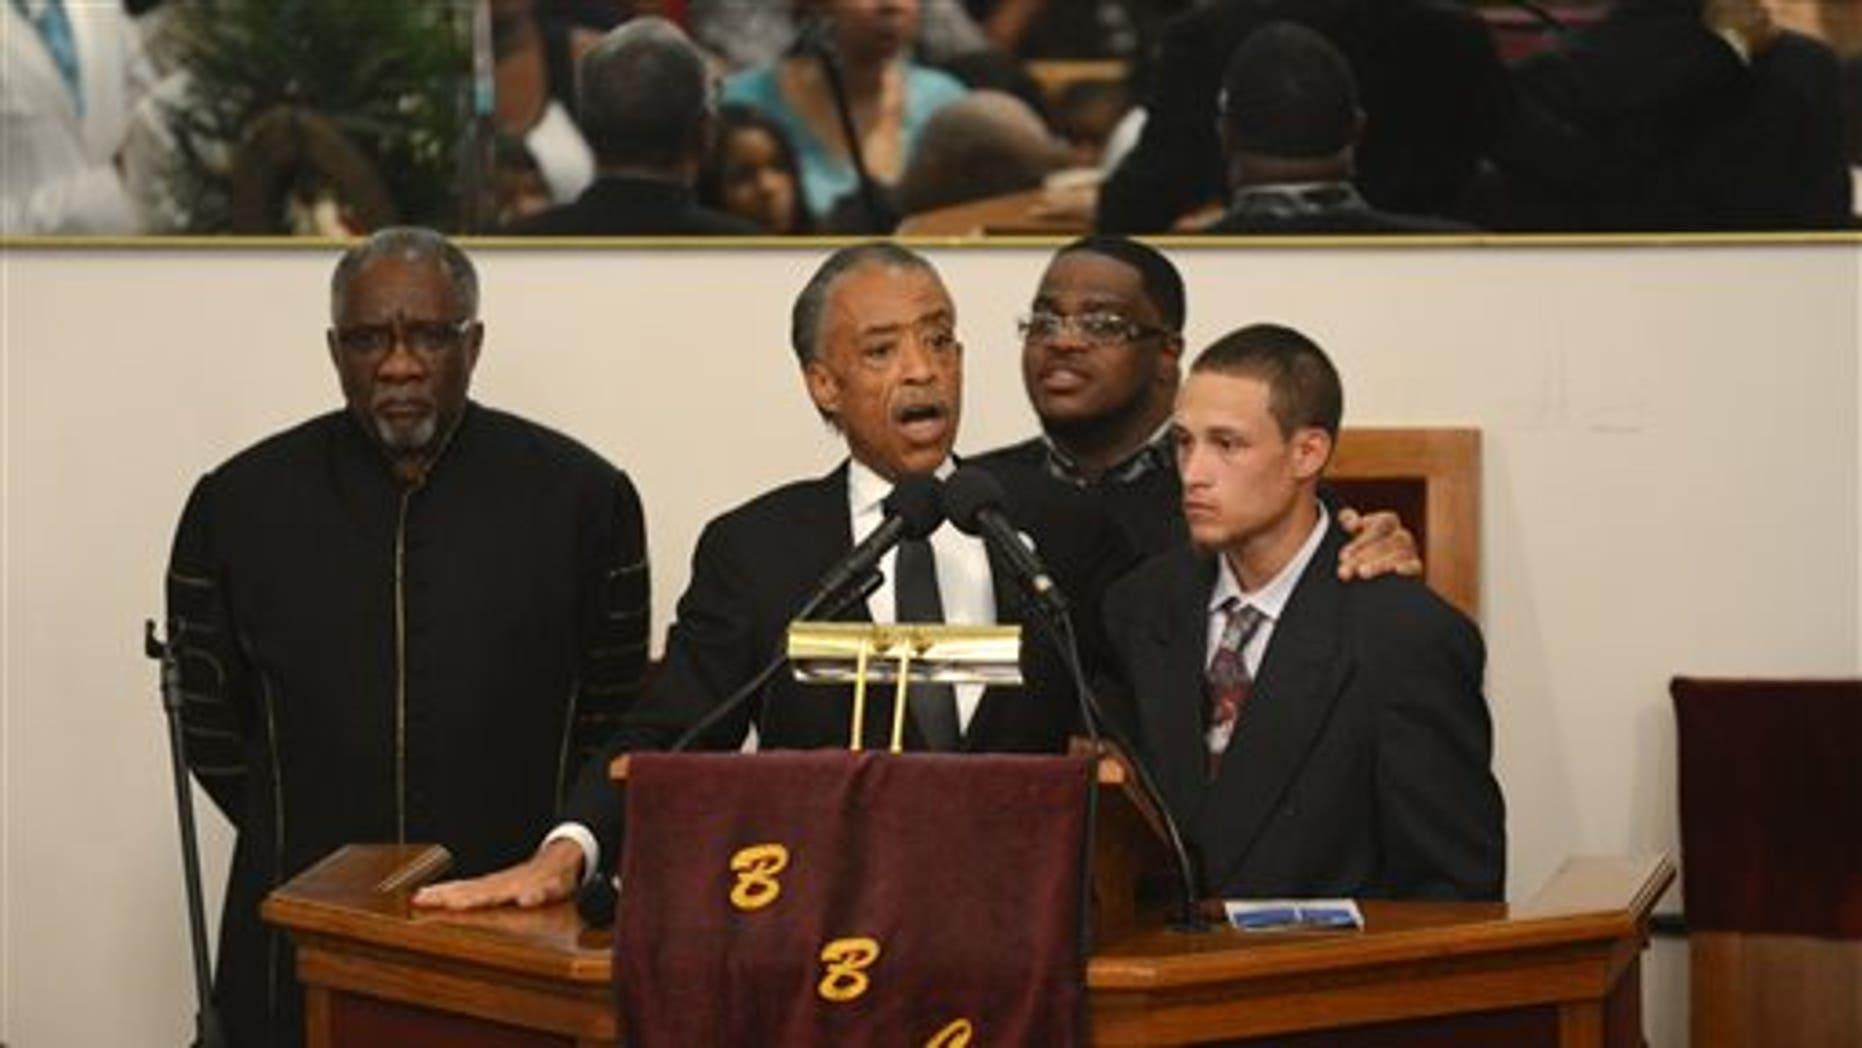 The Rev. Al Sharpton introduces Ramsey Orta at the funeral of Eric Garner at Bethel Baptist Church in the Brooklyn borough of New York on Wednesday, July 23, 2014. Garner died in police custody after an officer placed him in an apparent chokehold. Orta shot video of the incident. (AP Photo/New York Daily News, Julia Xanthos, Pool)